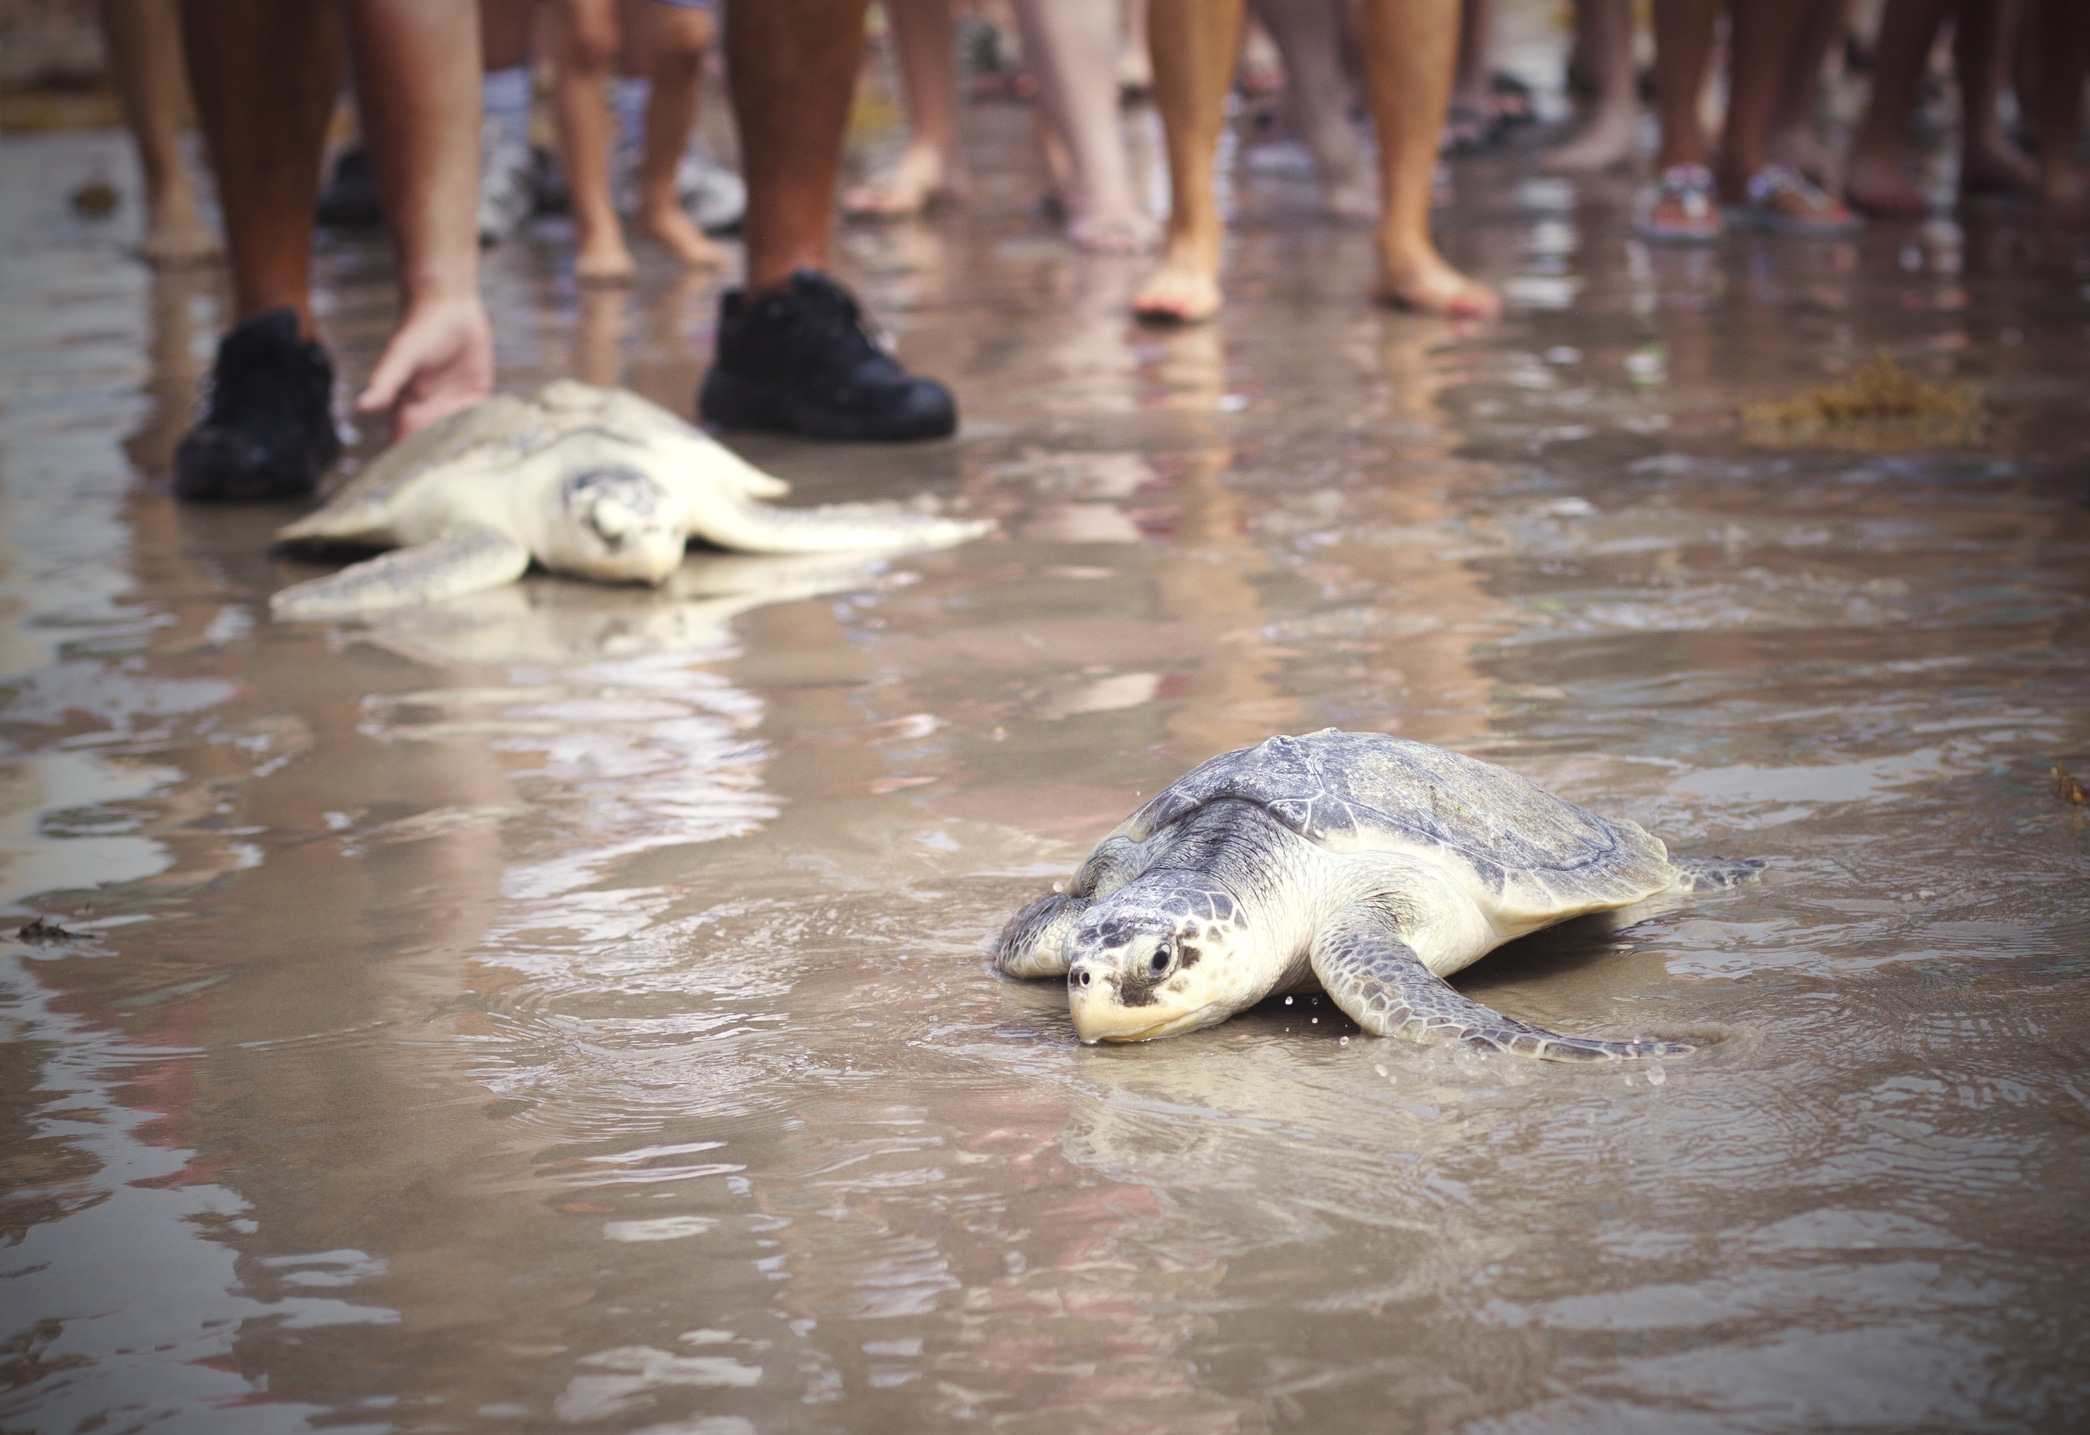 People rescuring turtles on the beach.